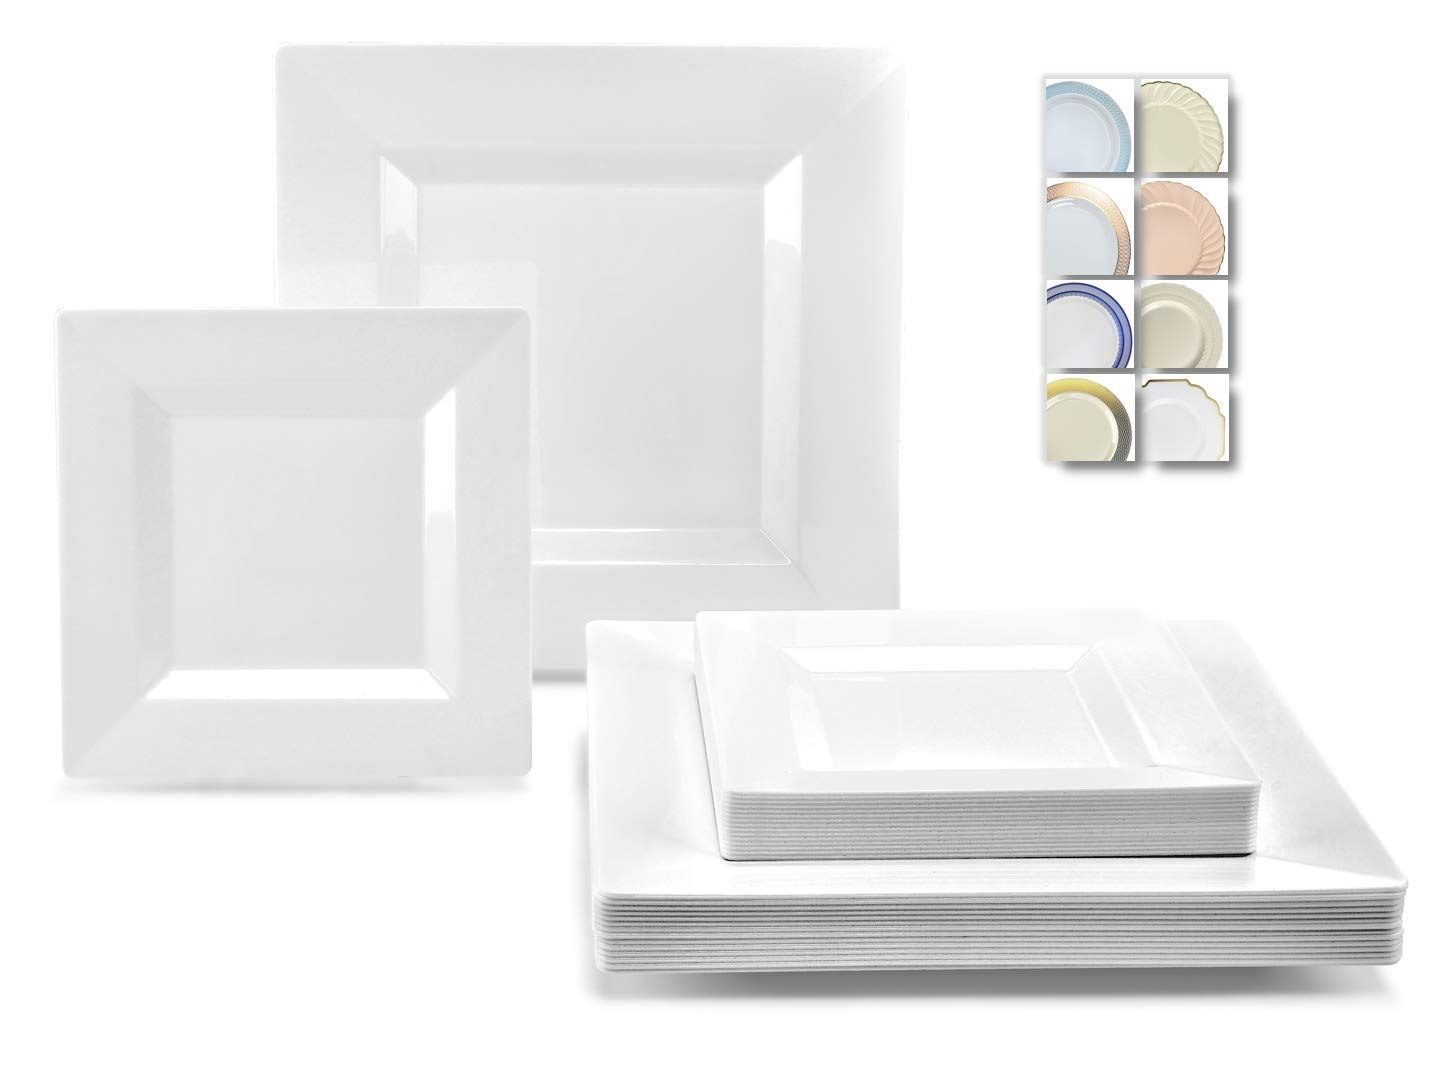 '' OCCASIONS'' 50 Plates Pack (25 Guests) - Heavyweight Wedding Party Square Disposable Plastic Plate Set - (25 x 9.5'' + 25 x 6.5'' (Square White) by OCCASIONS FINEST PLASTIC TABLEWARE